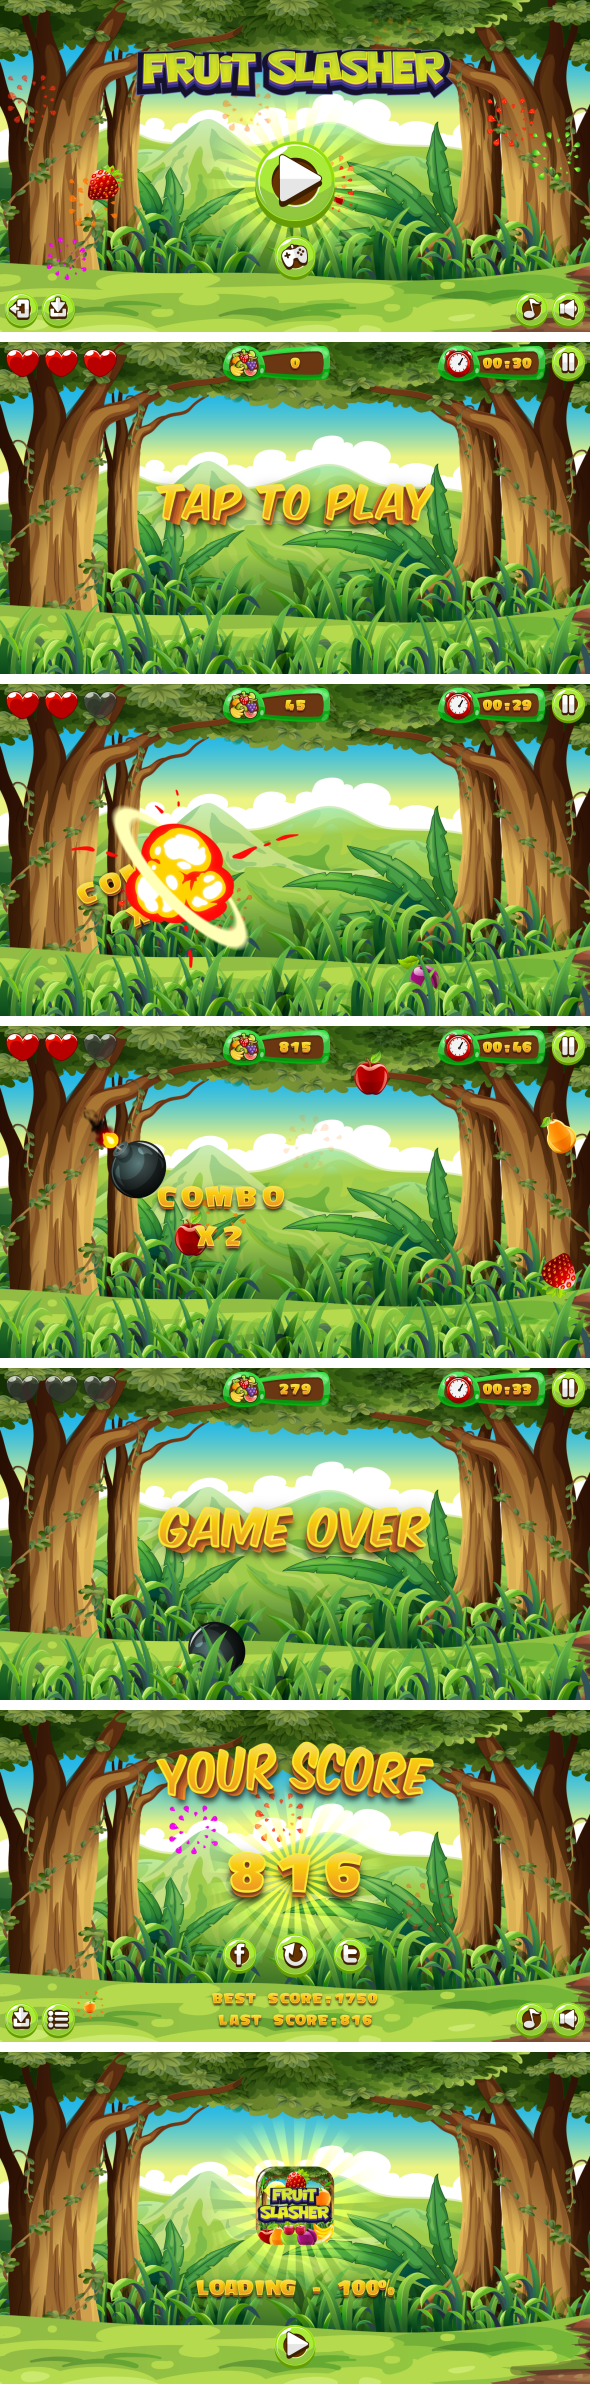 Fruit Slasher - HTML5 Game, Mobile Version+AdMob!!! (Construct 3   Construct 2   Capx) - 3